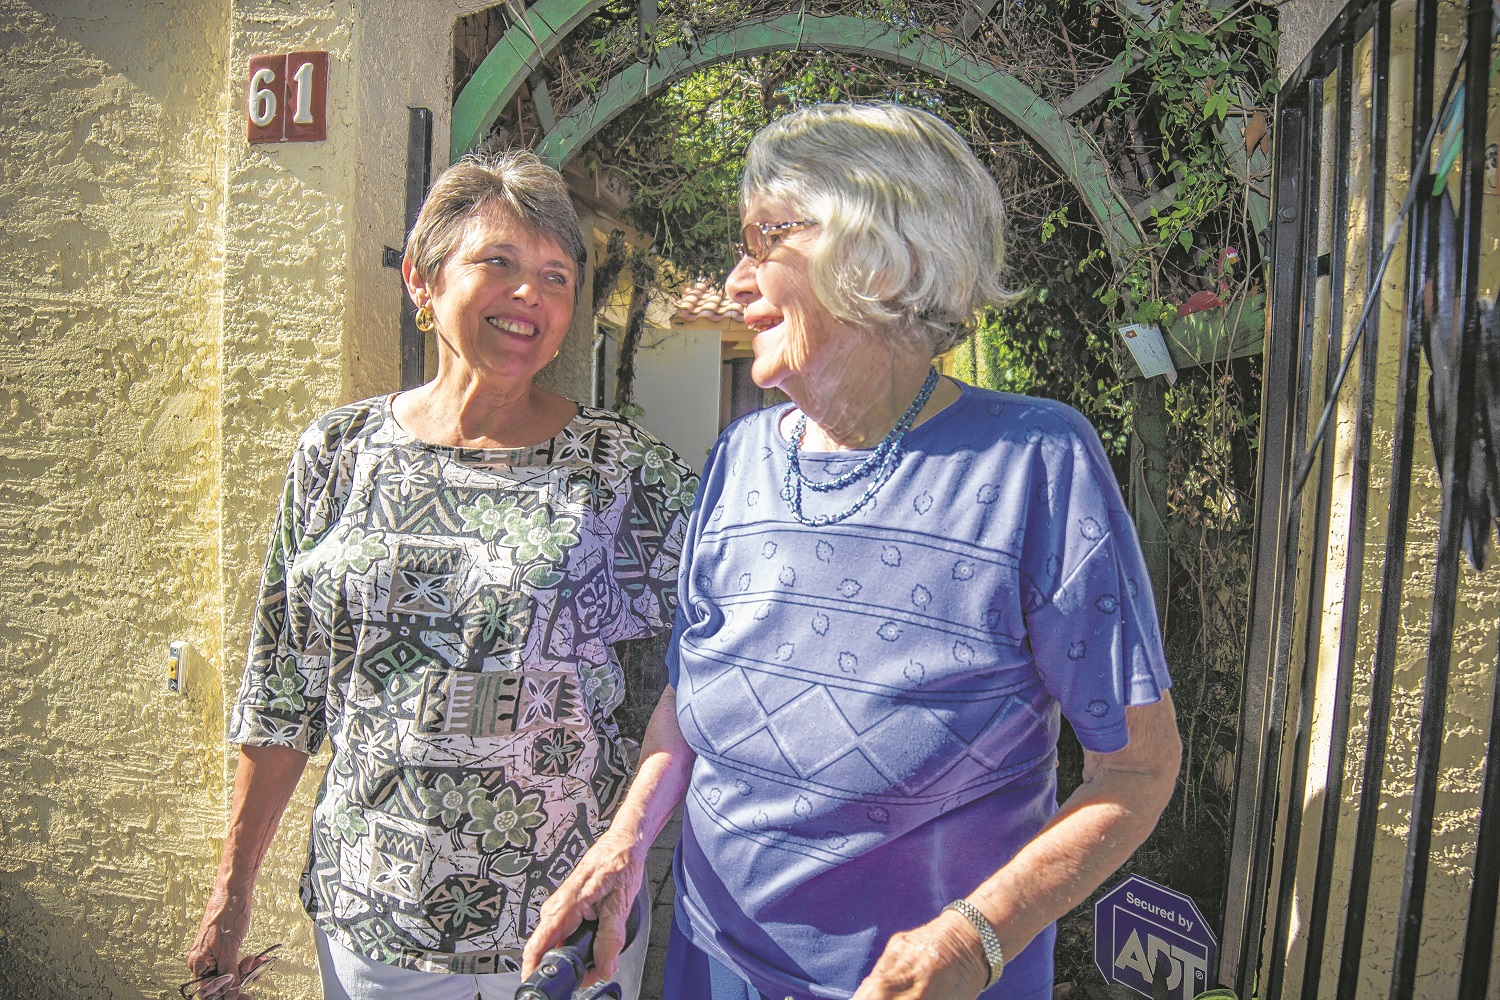 Lightening the load for seniors: Neighbors lend a helping hand